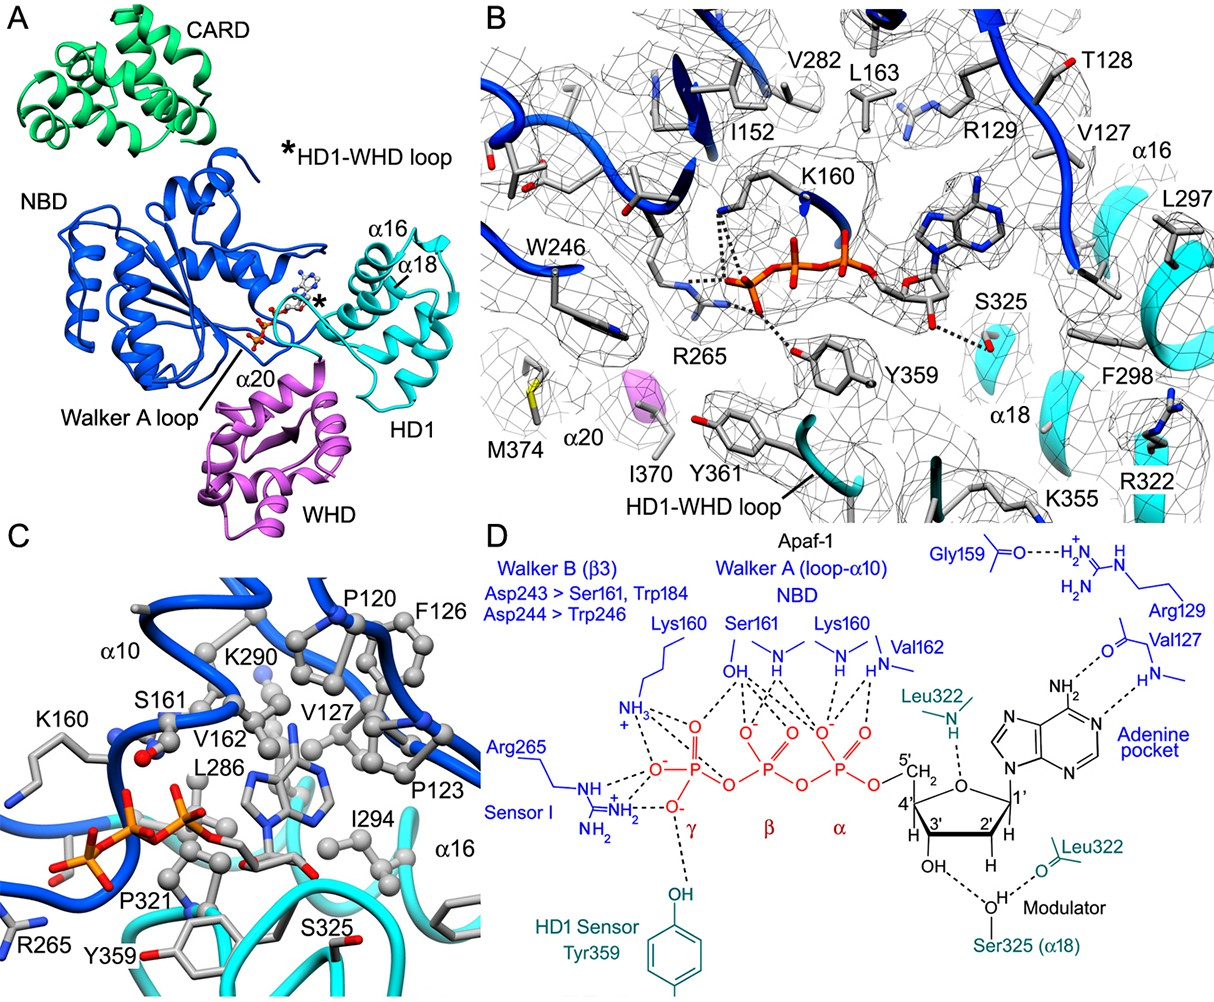 A Near Atomic Structure Of The Active Human Apoptosome Elife Original Hn Crystal 15 G Datp Binding By Apaf 1 In